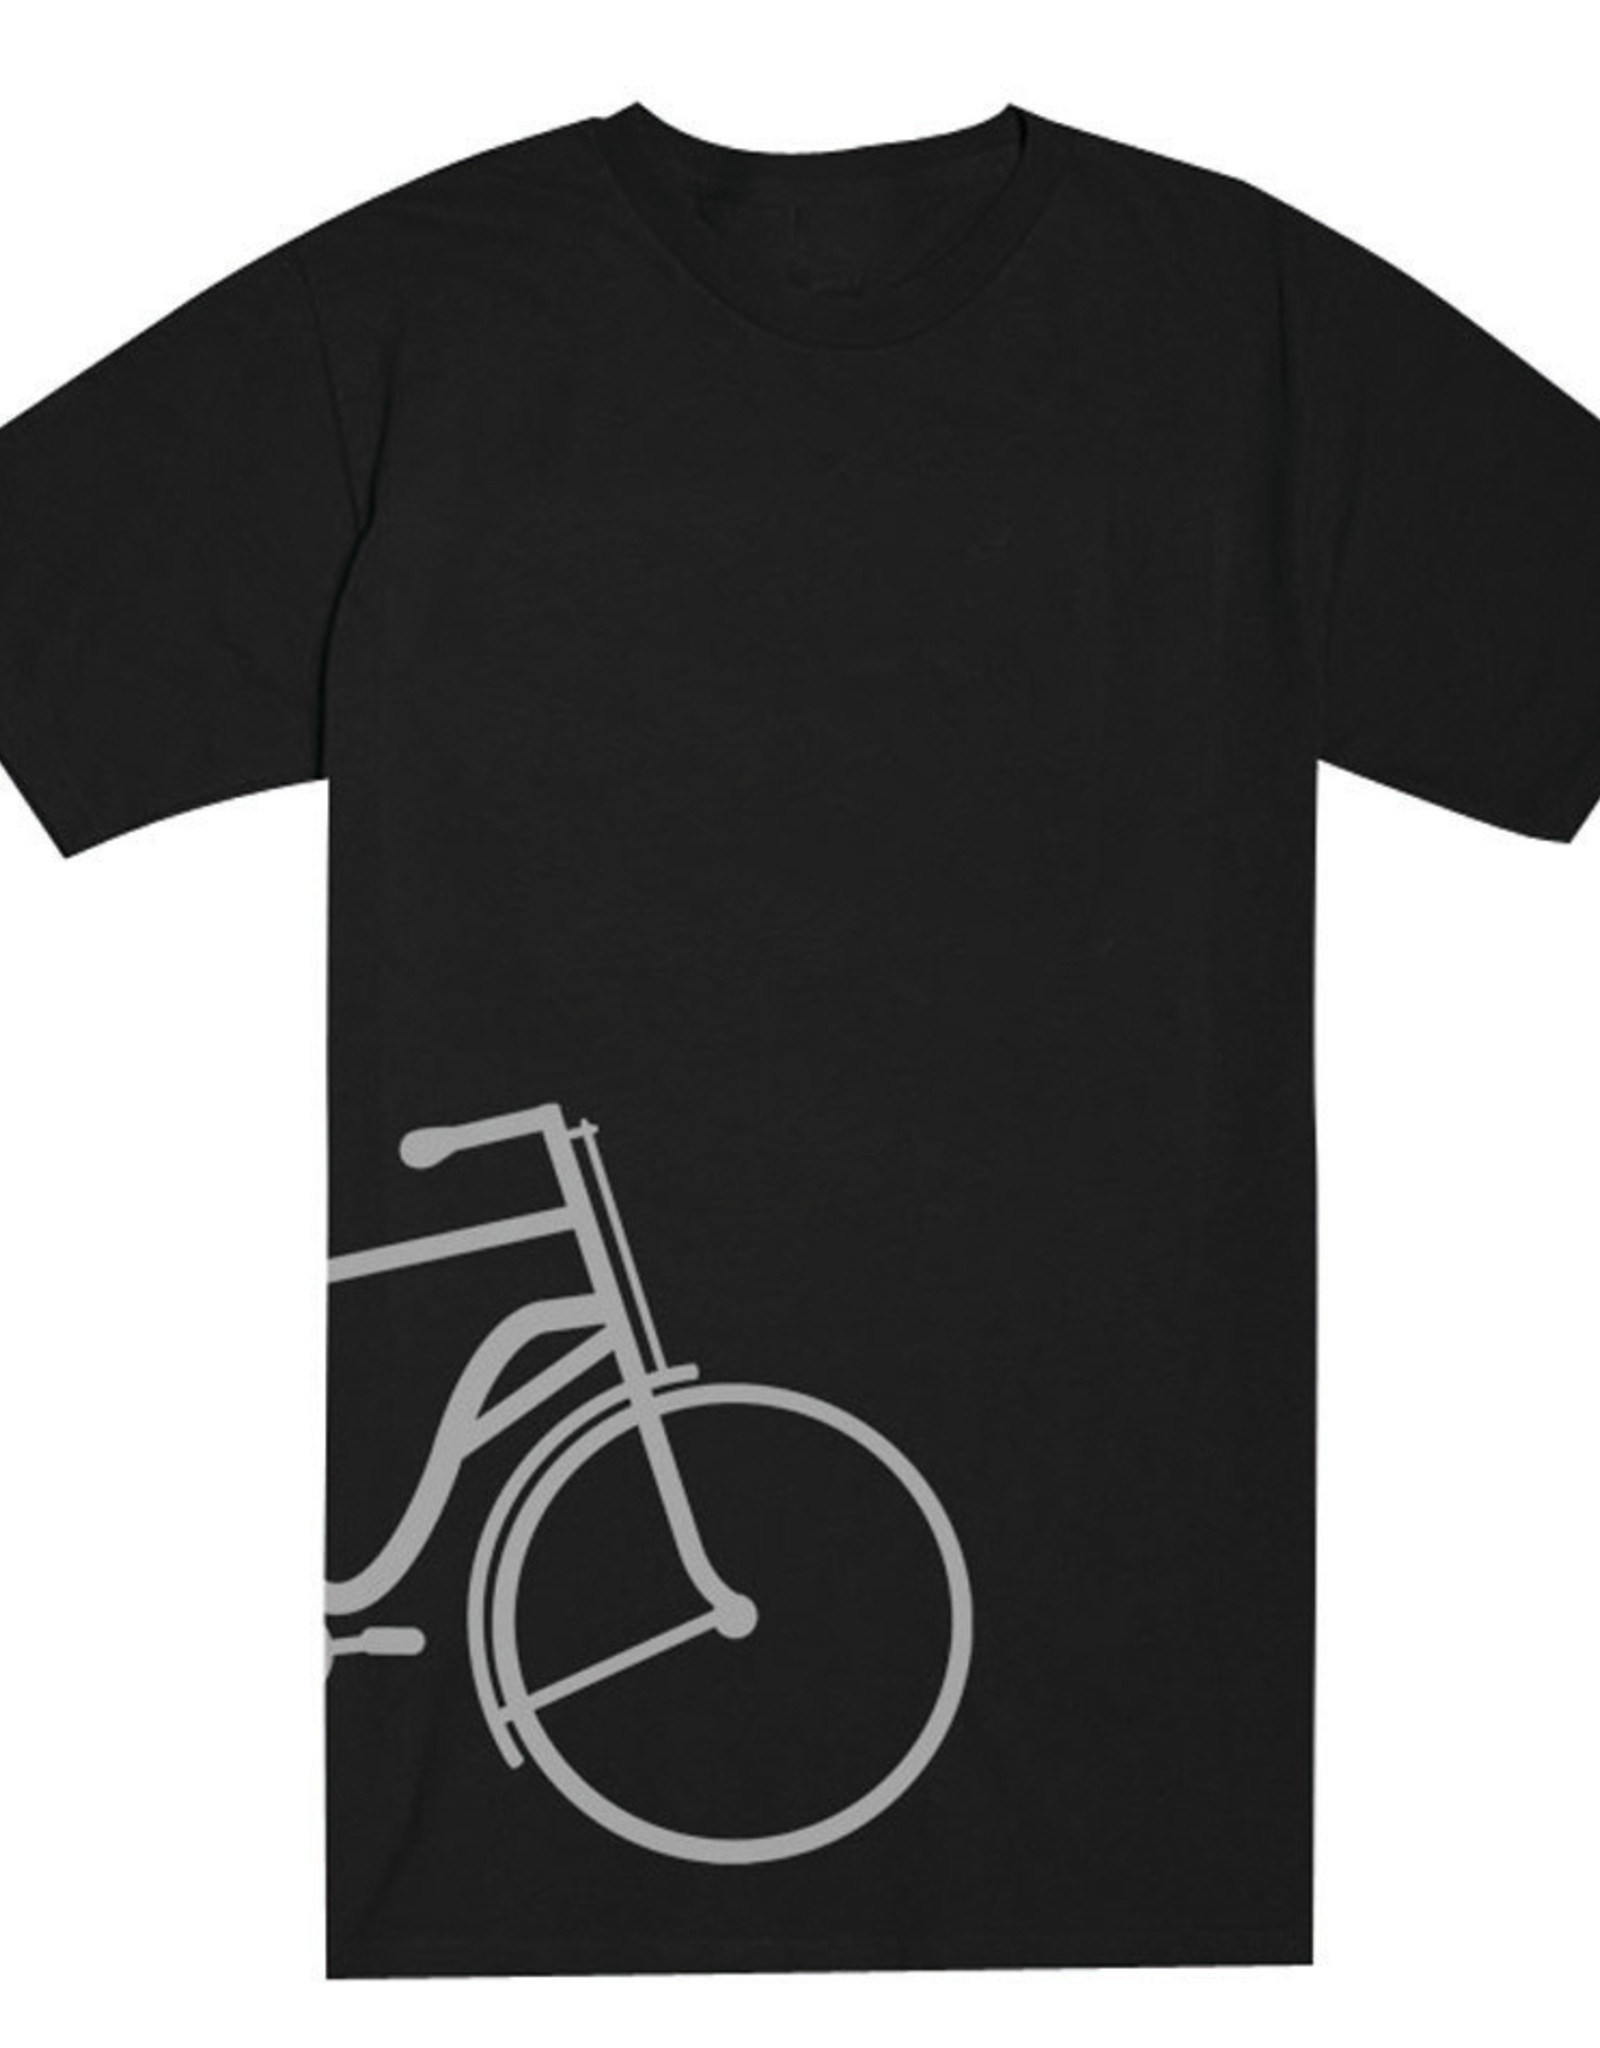 Half Bike T-shirt - 2 Colors Unisex Cut